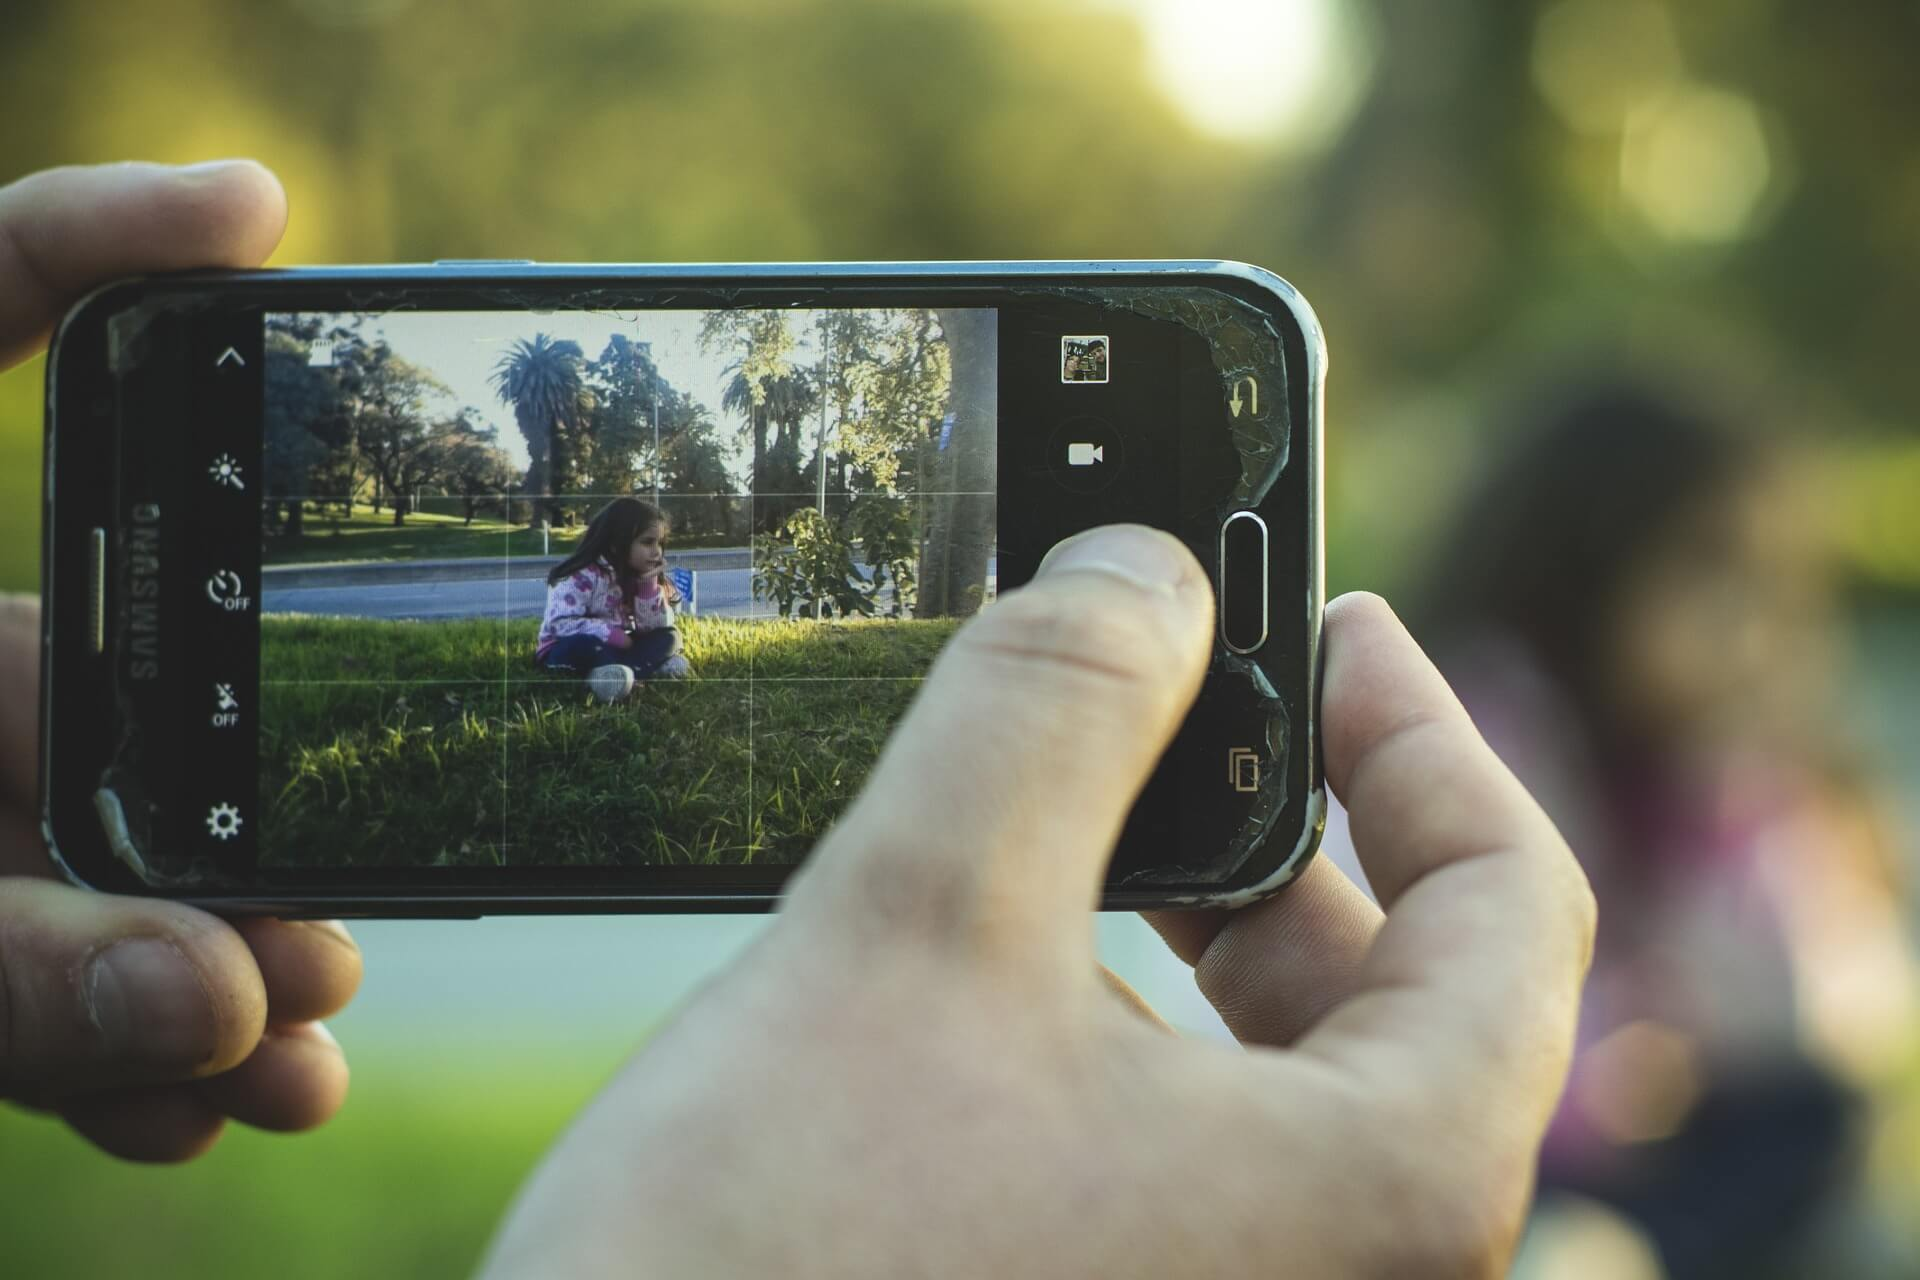 content/fr-fr/images/repository/isc/2020/is-it-safe-to-post-photos-of-your-kids-online.jpg